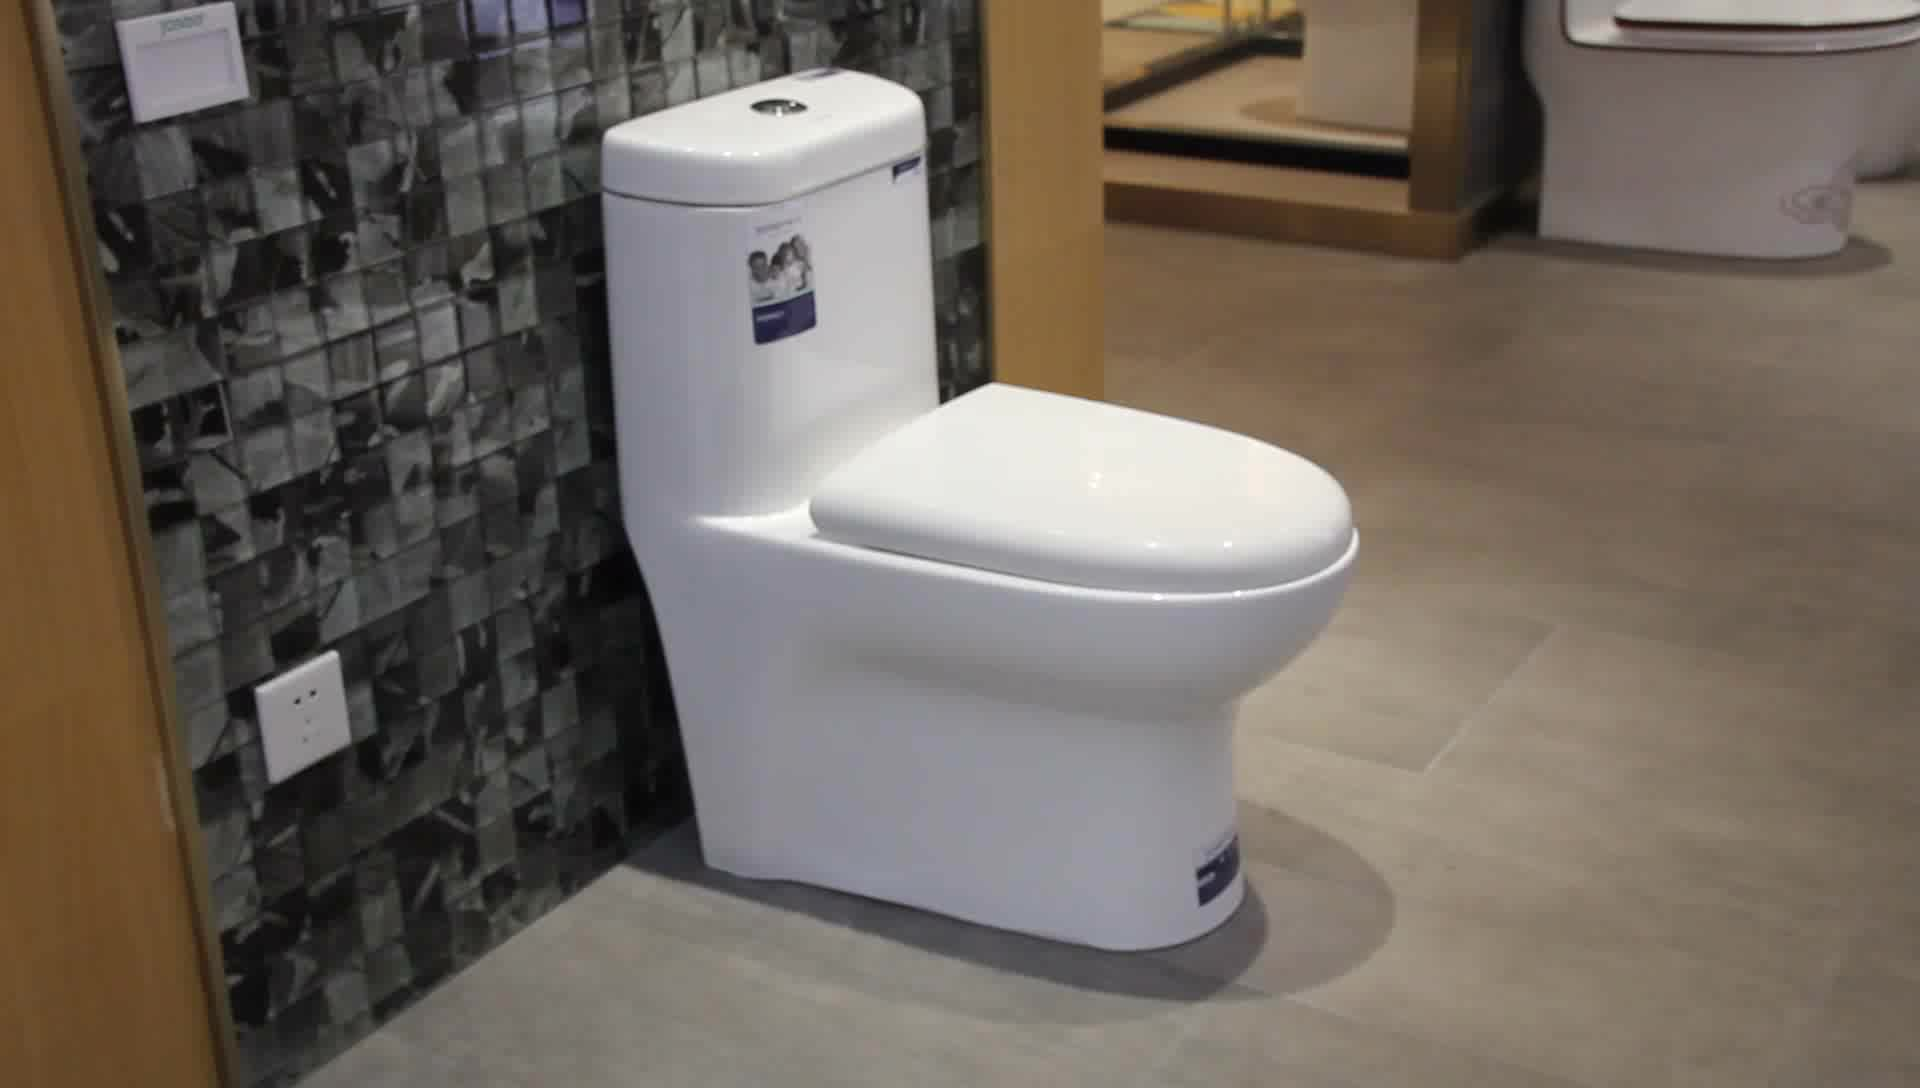 Wc design geberit in wall flush toilet tank systems for wall